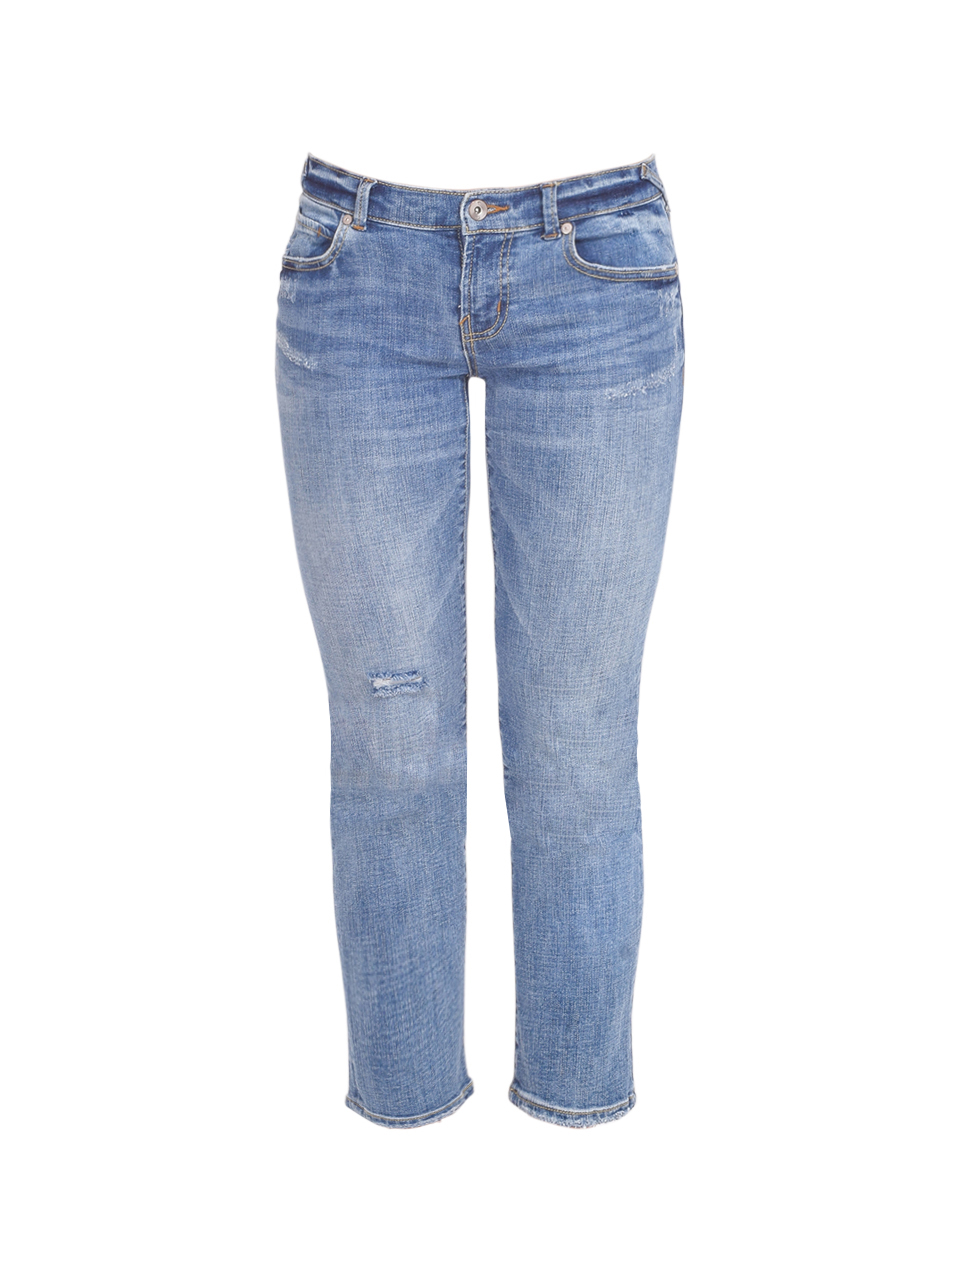 SERRA By Joie Rucker Smashing Low Rise Jeans in Rockpoint Blue Product Shot